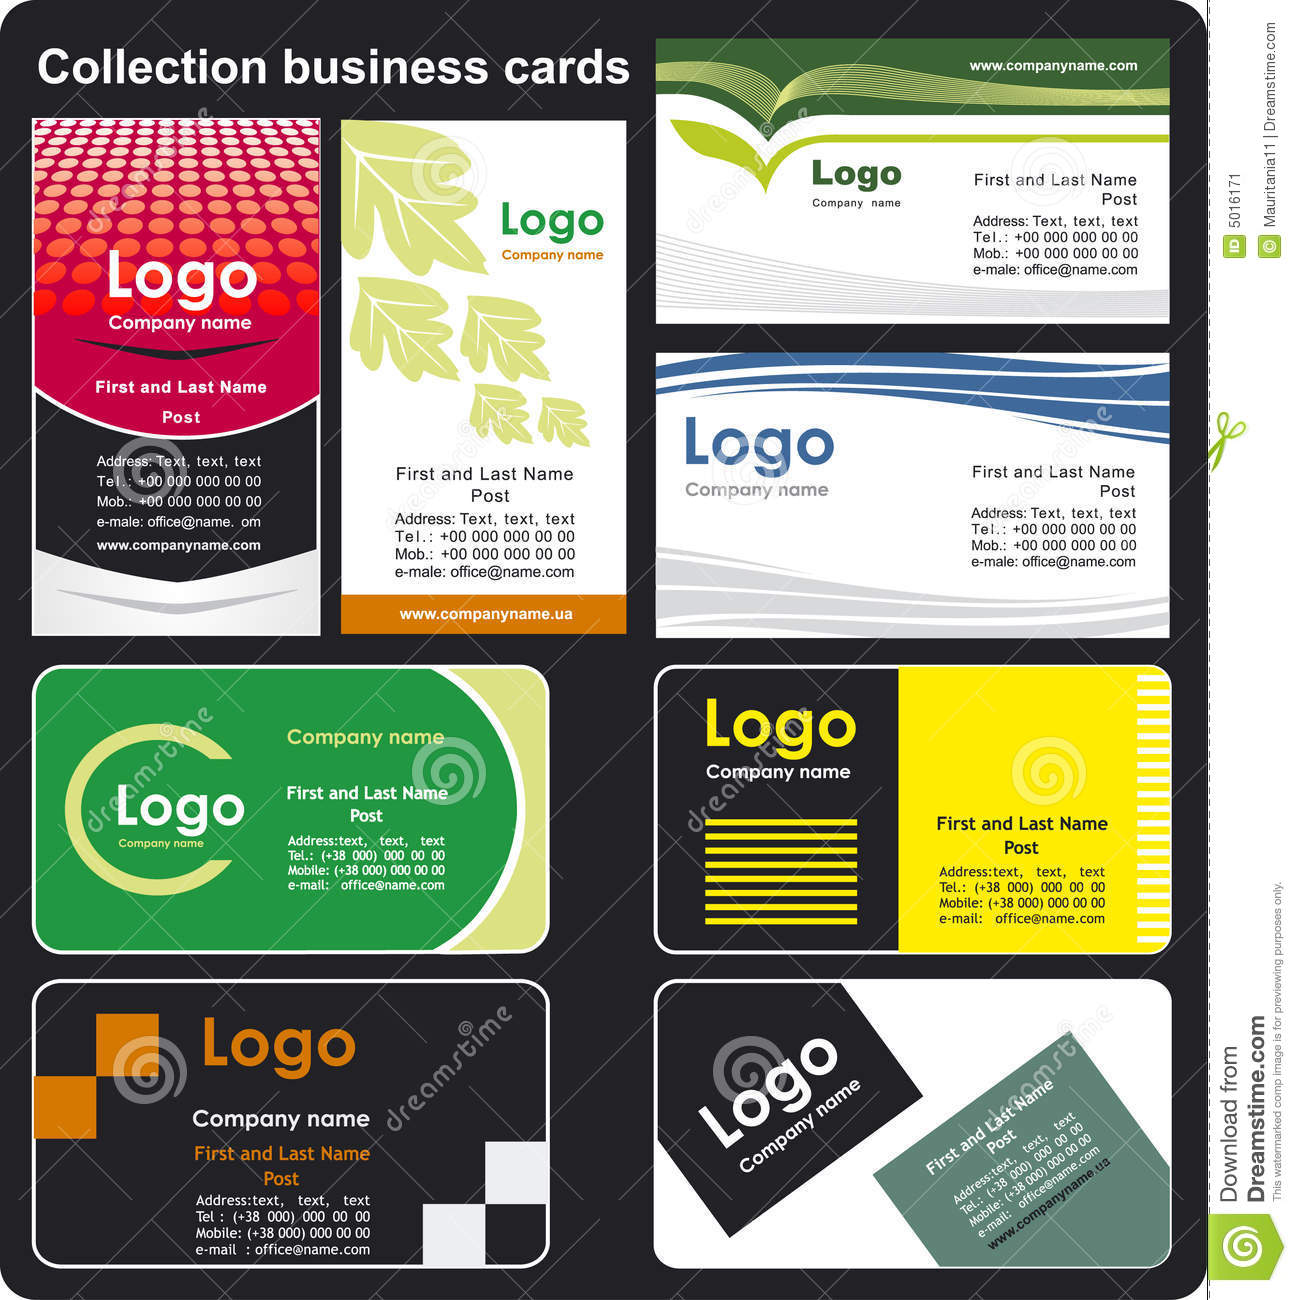 Collection business cards stock image image 5016171 for Business card collection